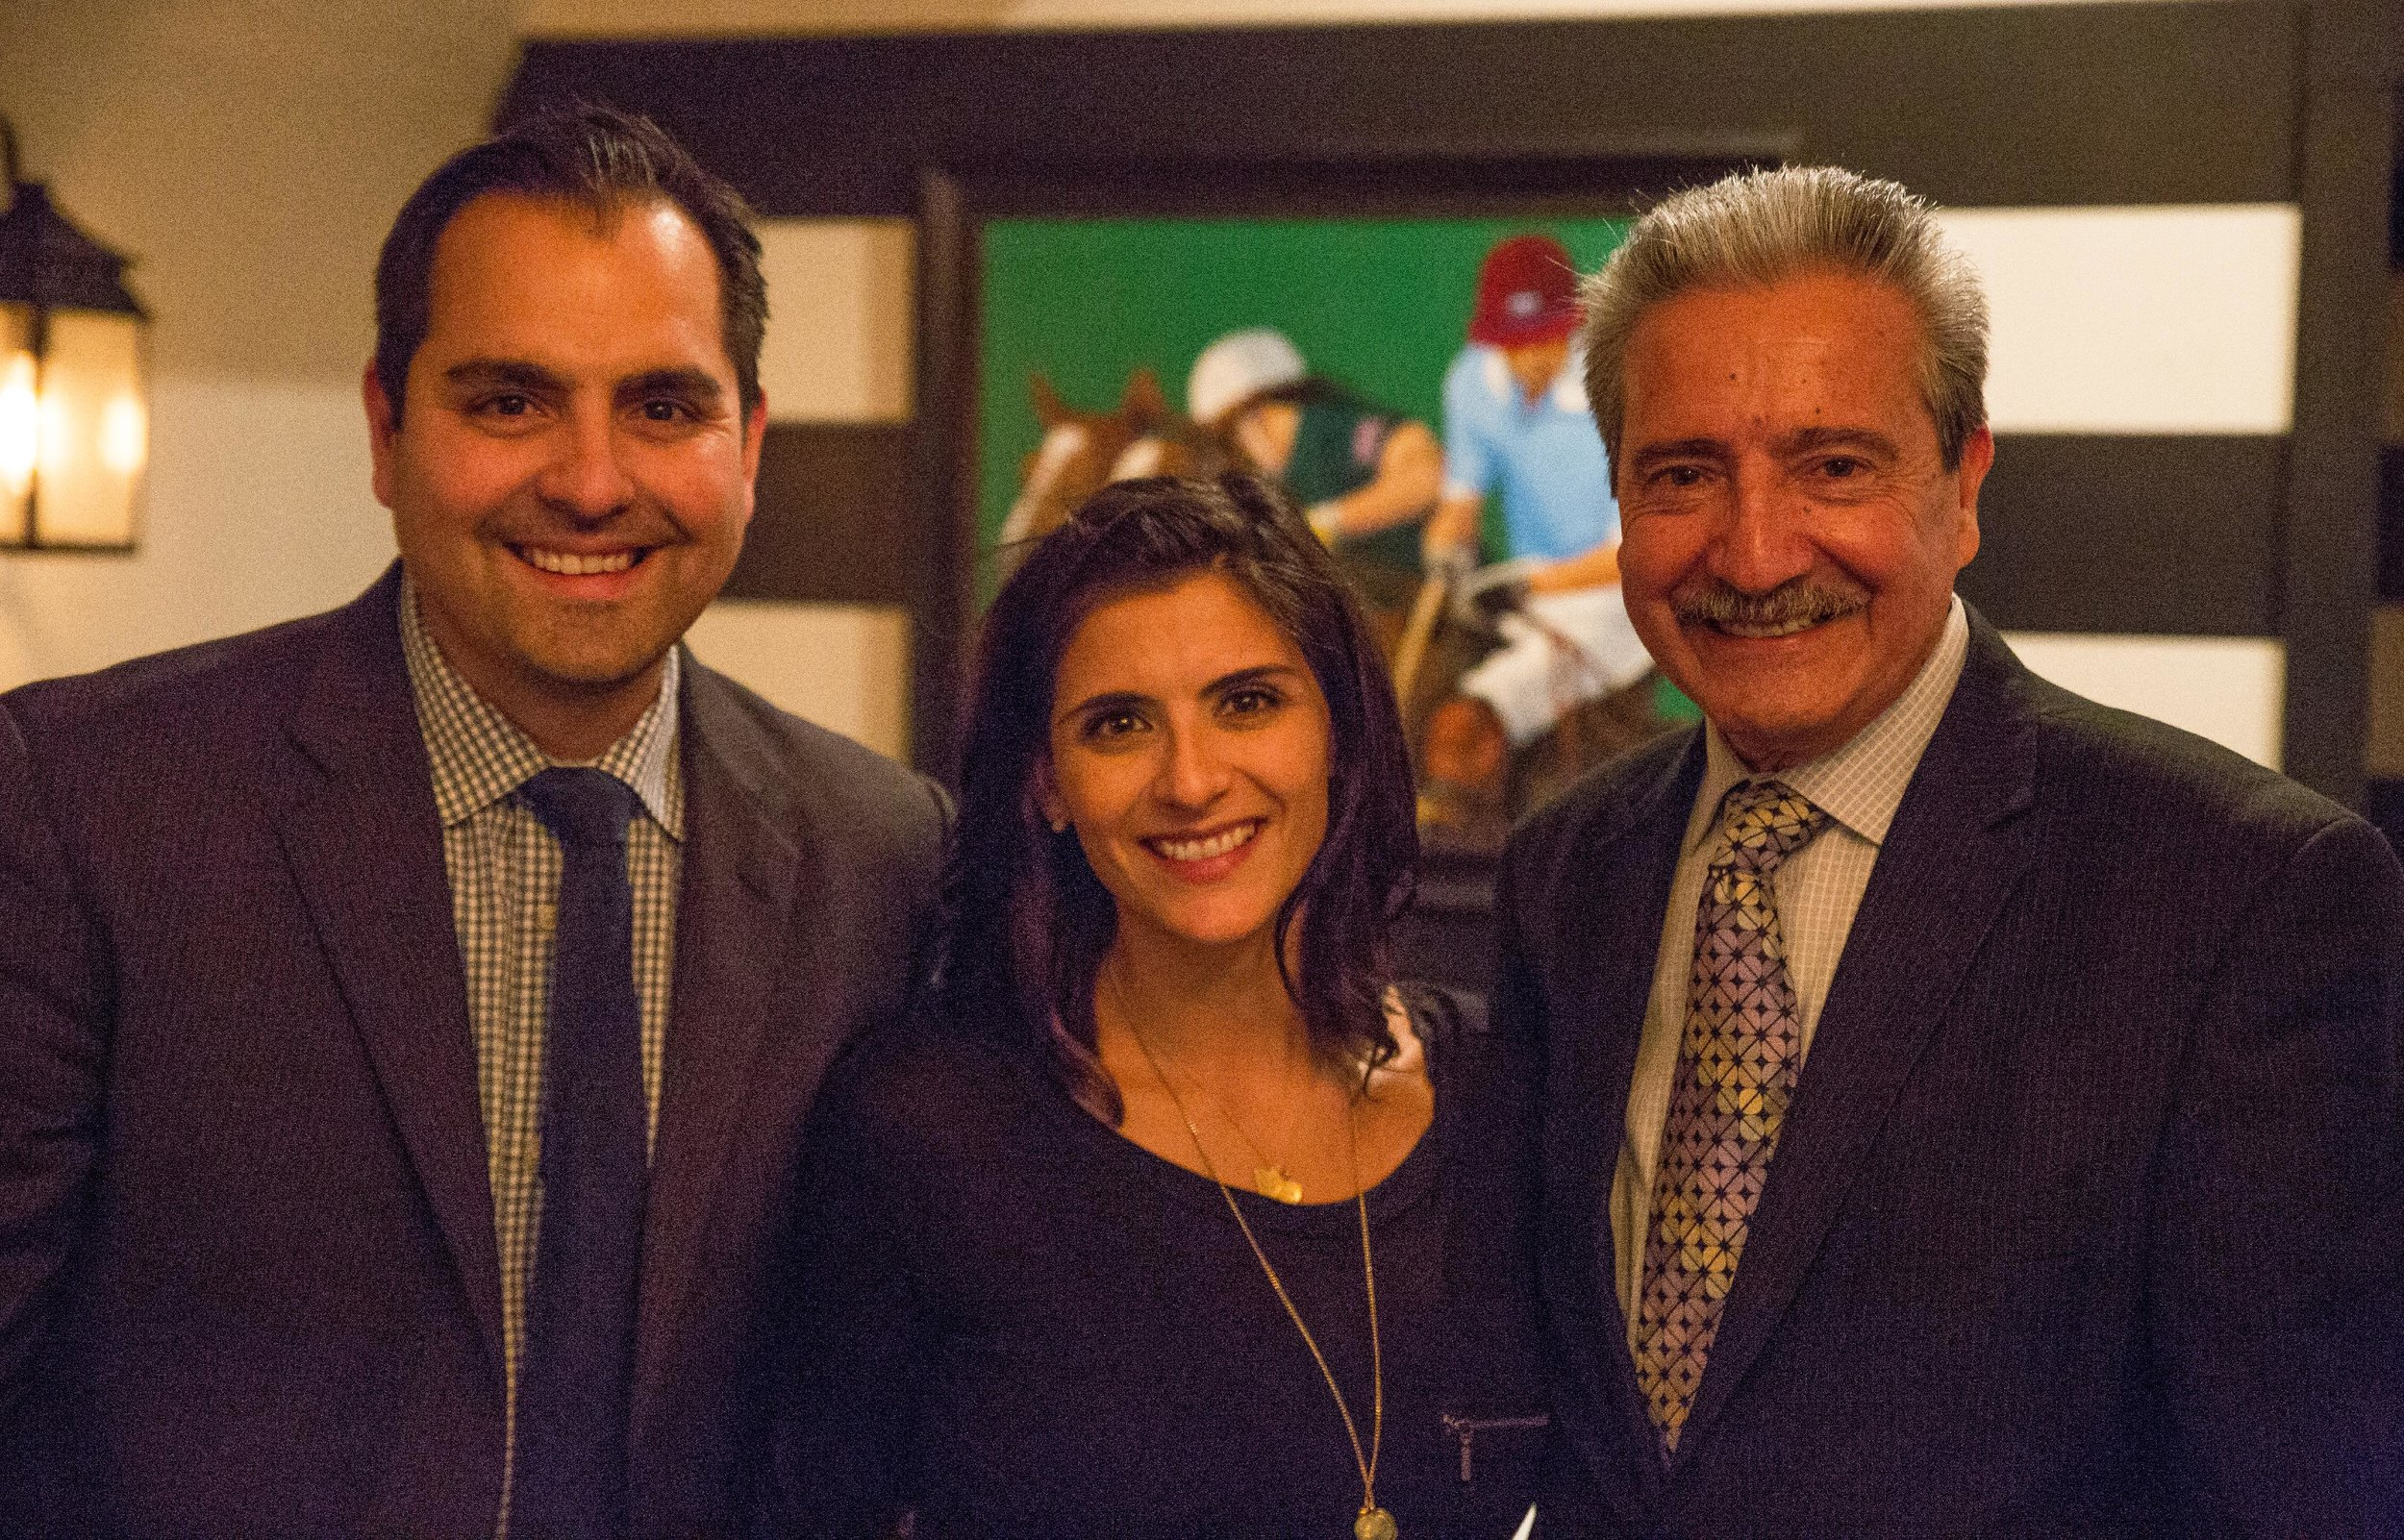 Cafe Buenos Aires owner Hugo Garcia, right, poses with son Gabriel Garcia and daughter Vanessa Long, who help him run the restaurant.